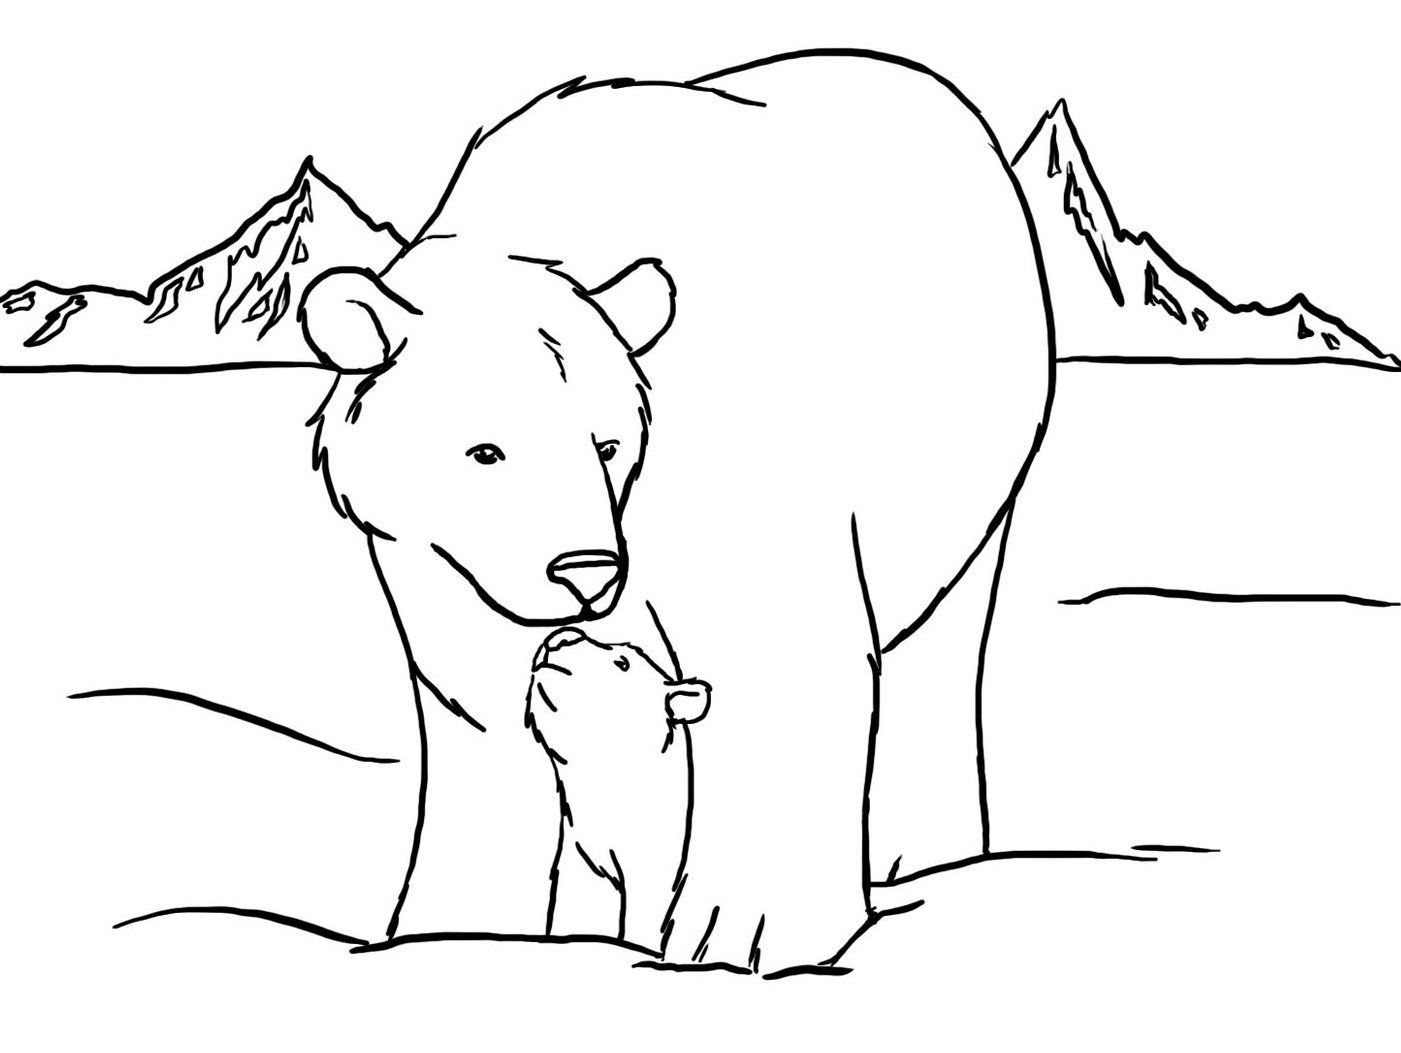 Download And Print Cute Polar Bear Color Pages To Print Polar Bear Coloring Page Polar Bear Color Pictures Of Polar Bears